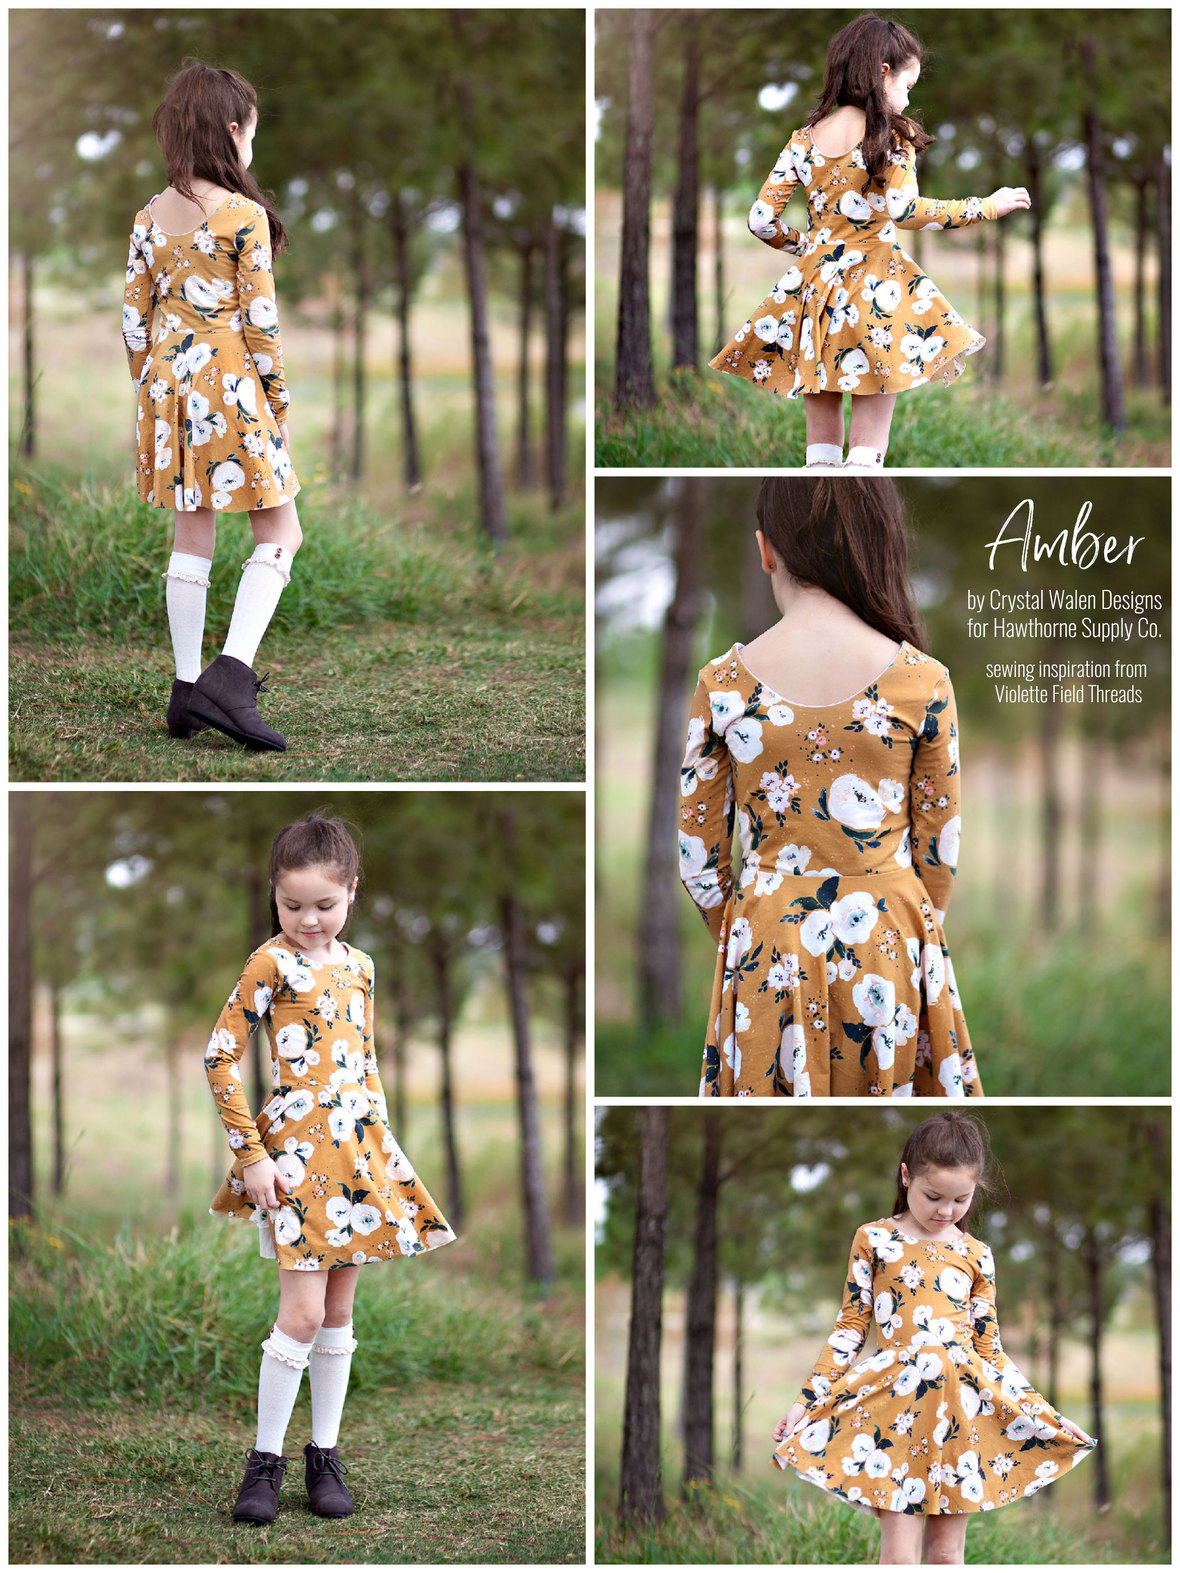 Amber-fabric-by-Crystal-Walen-at-Hawthorne-SUpply-Co-sewing-by-Ashley-Cowan